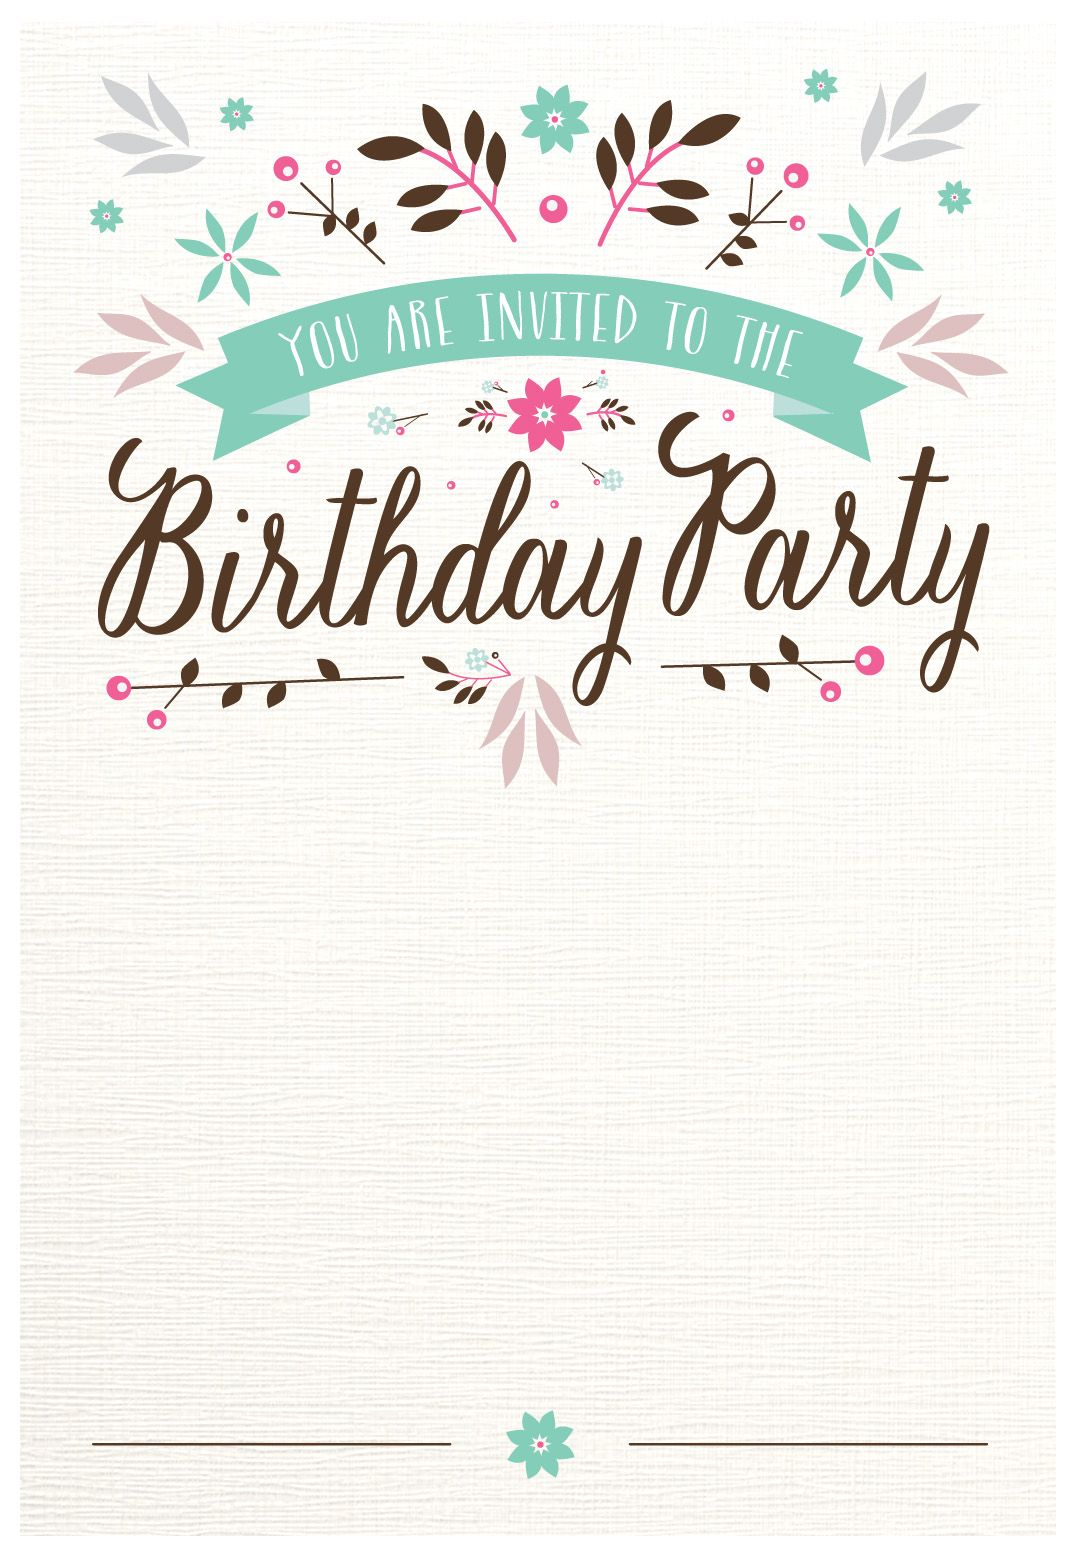 Free photo invitations doritrcatodos free photo invitations filmwisefo